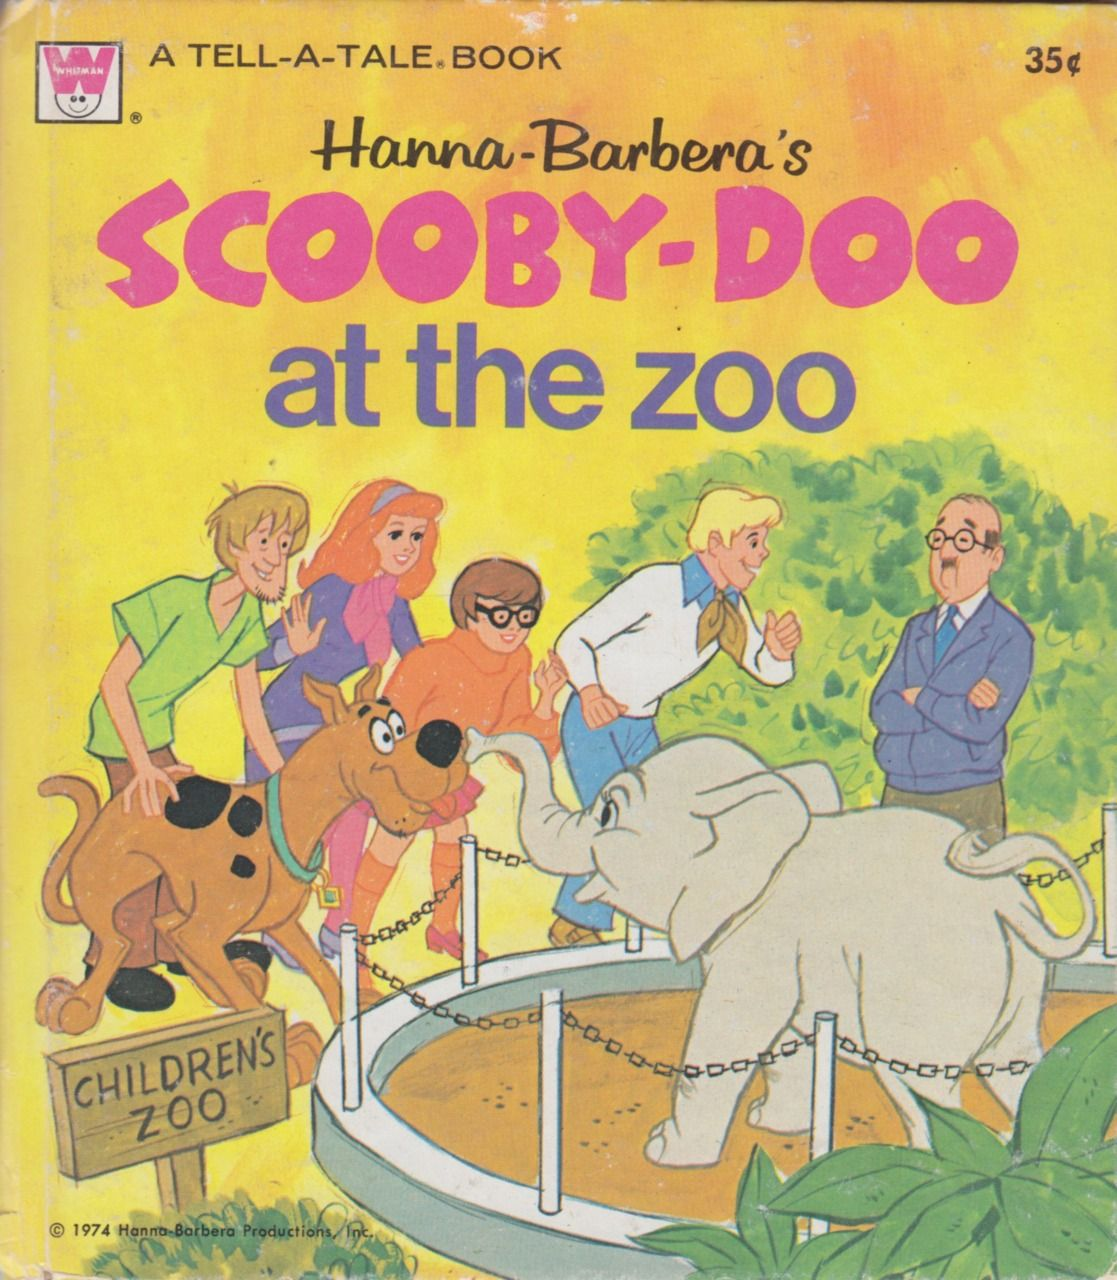 Whitman hot wheels coloring book - Whitman Tell A Tale Books 2570 Hanna Barbera S Scooby Doo At